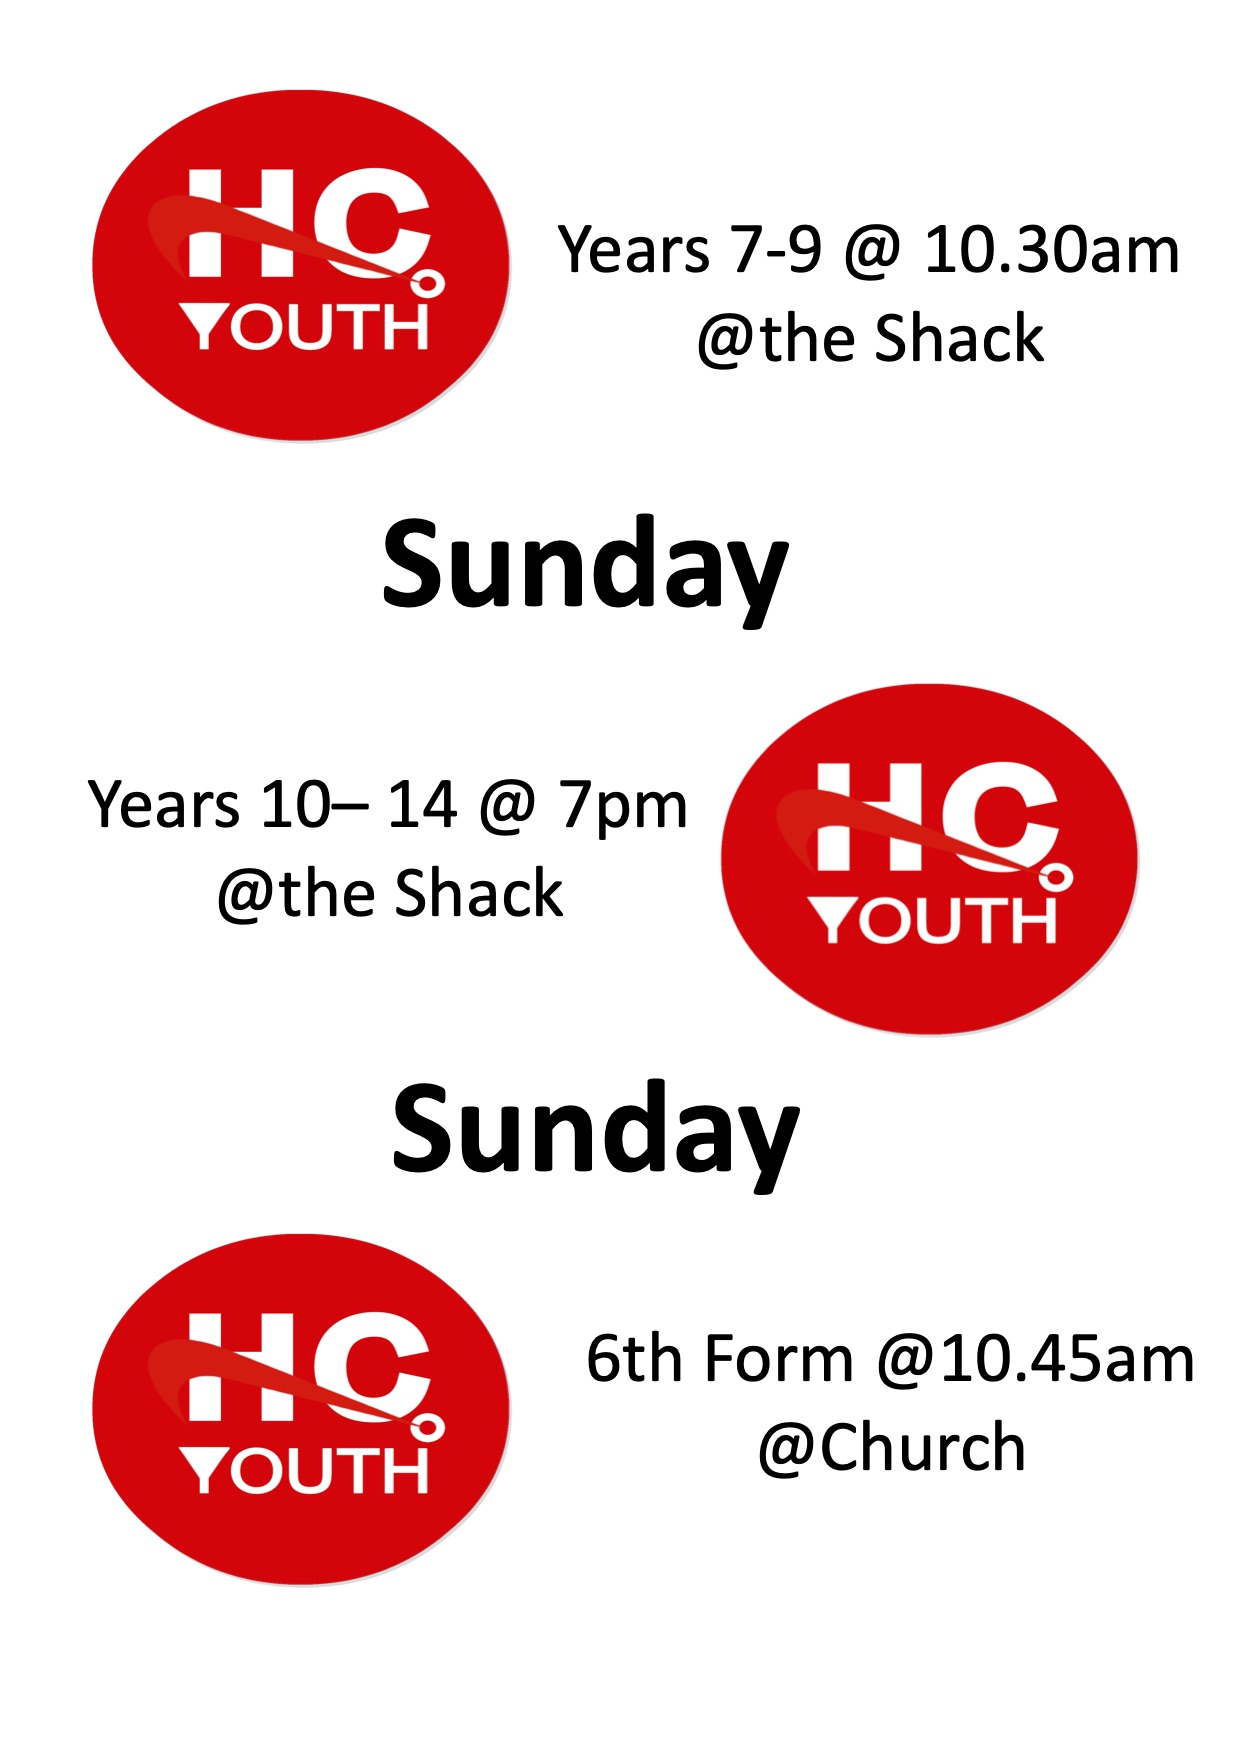 HCBC Youth Website Page Oct 20